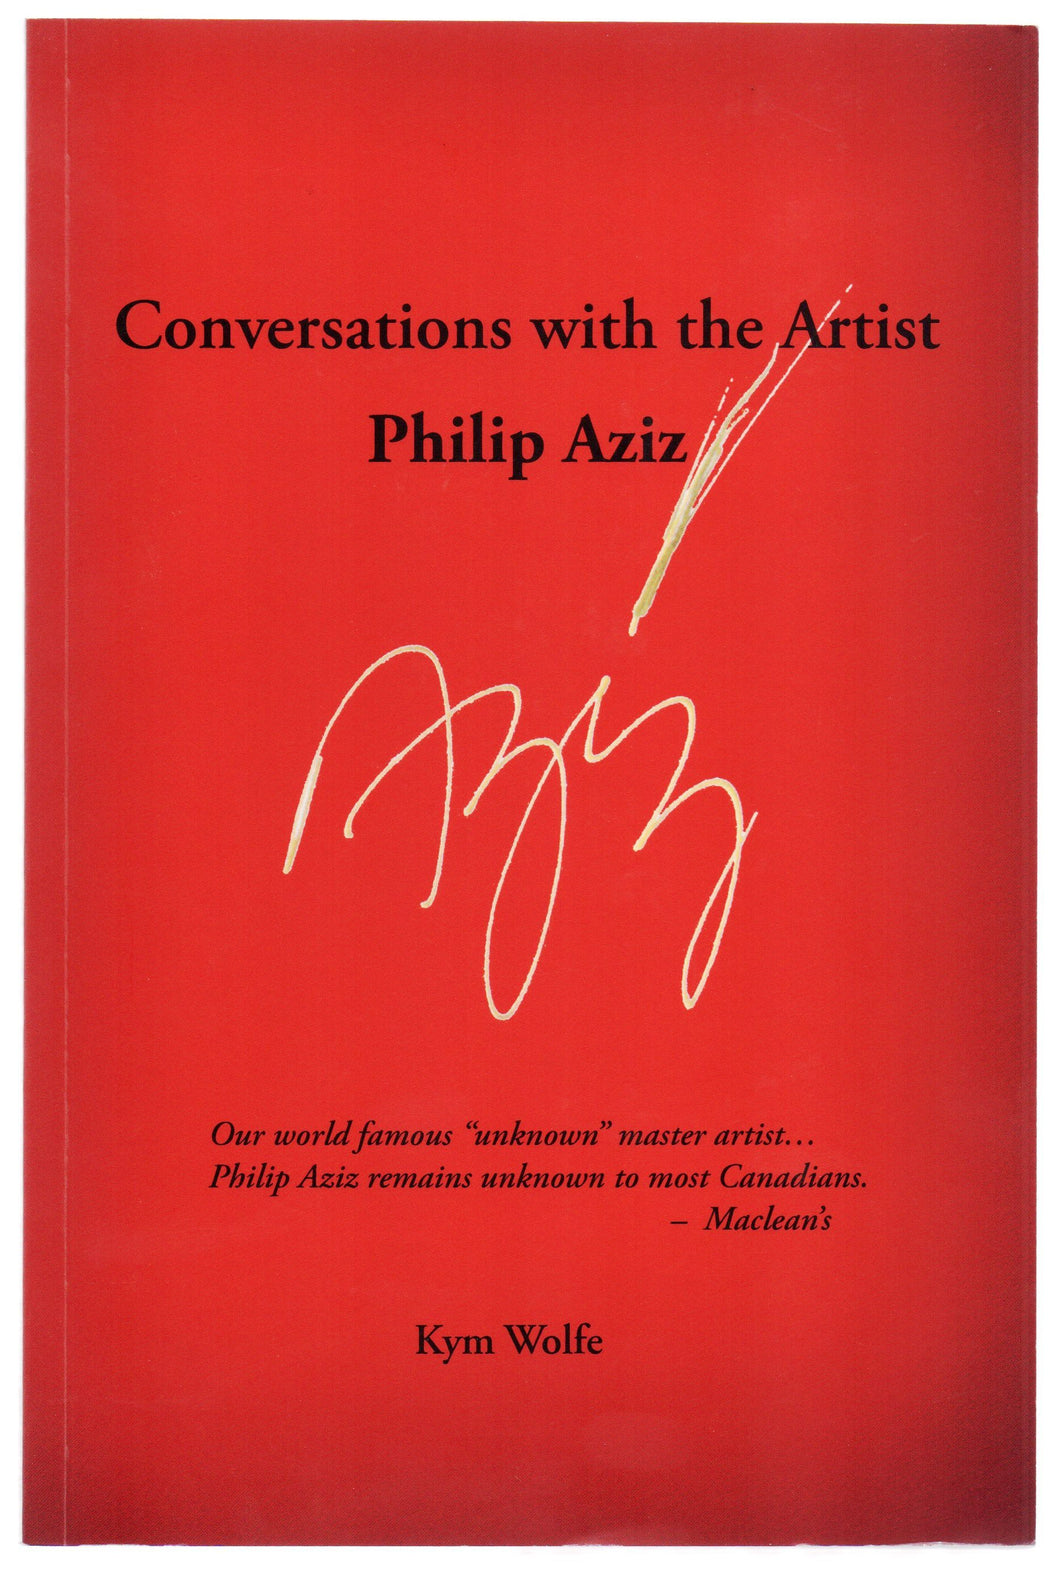 Conversations with the Artist Philip Aziz